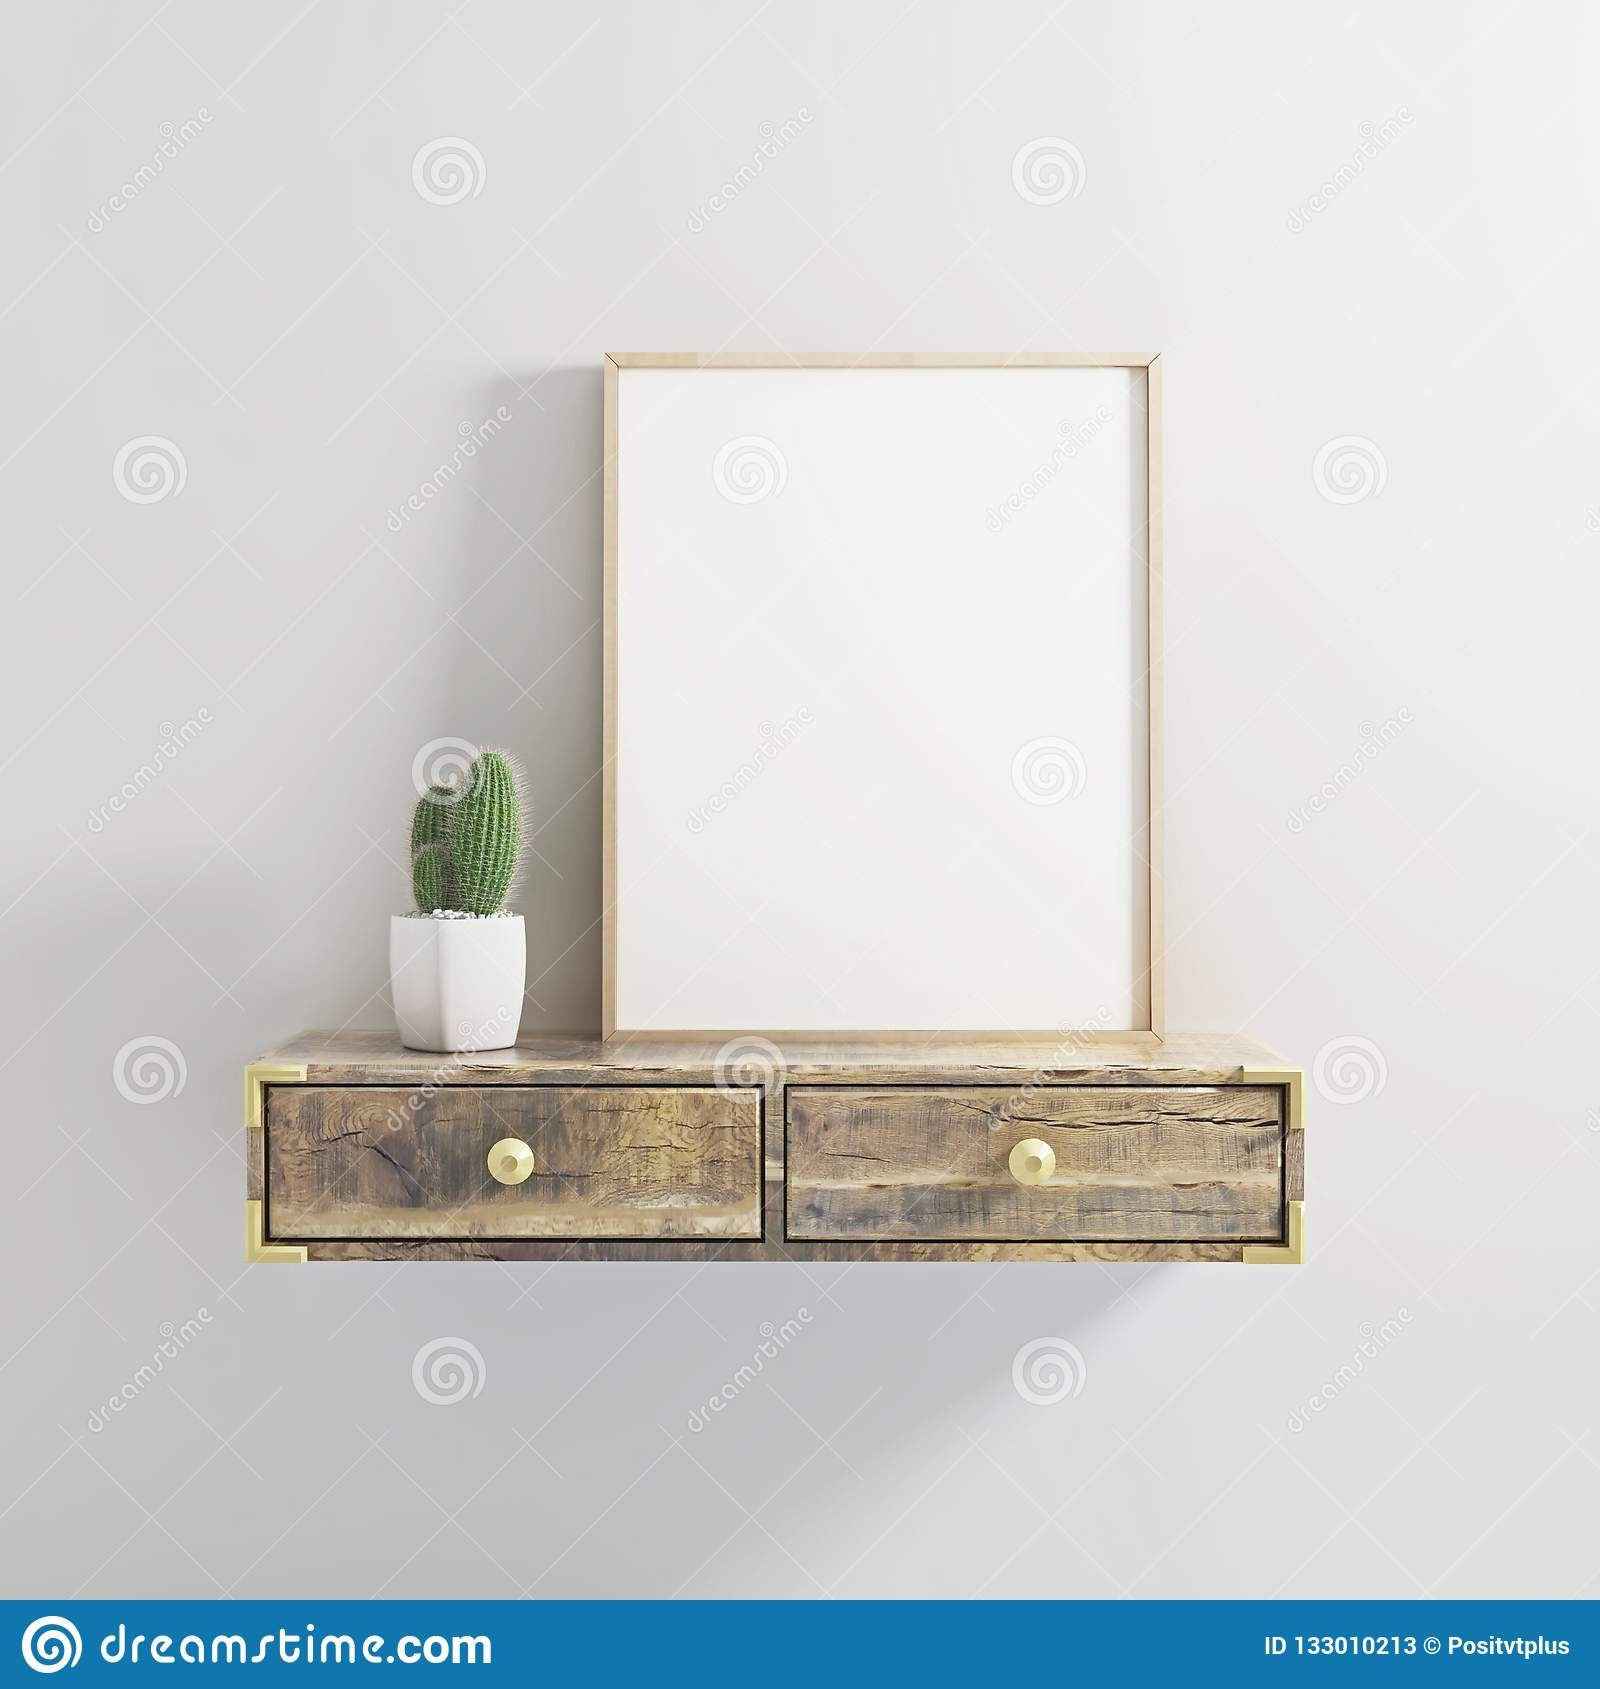 22f605810a6f Poster frame mockup modern style 3d illustration. More similar stock  illustrations